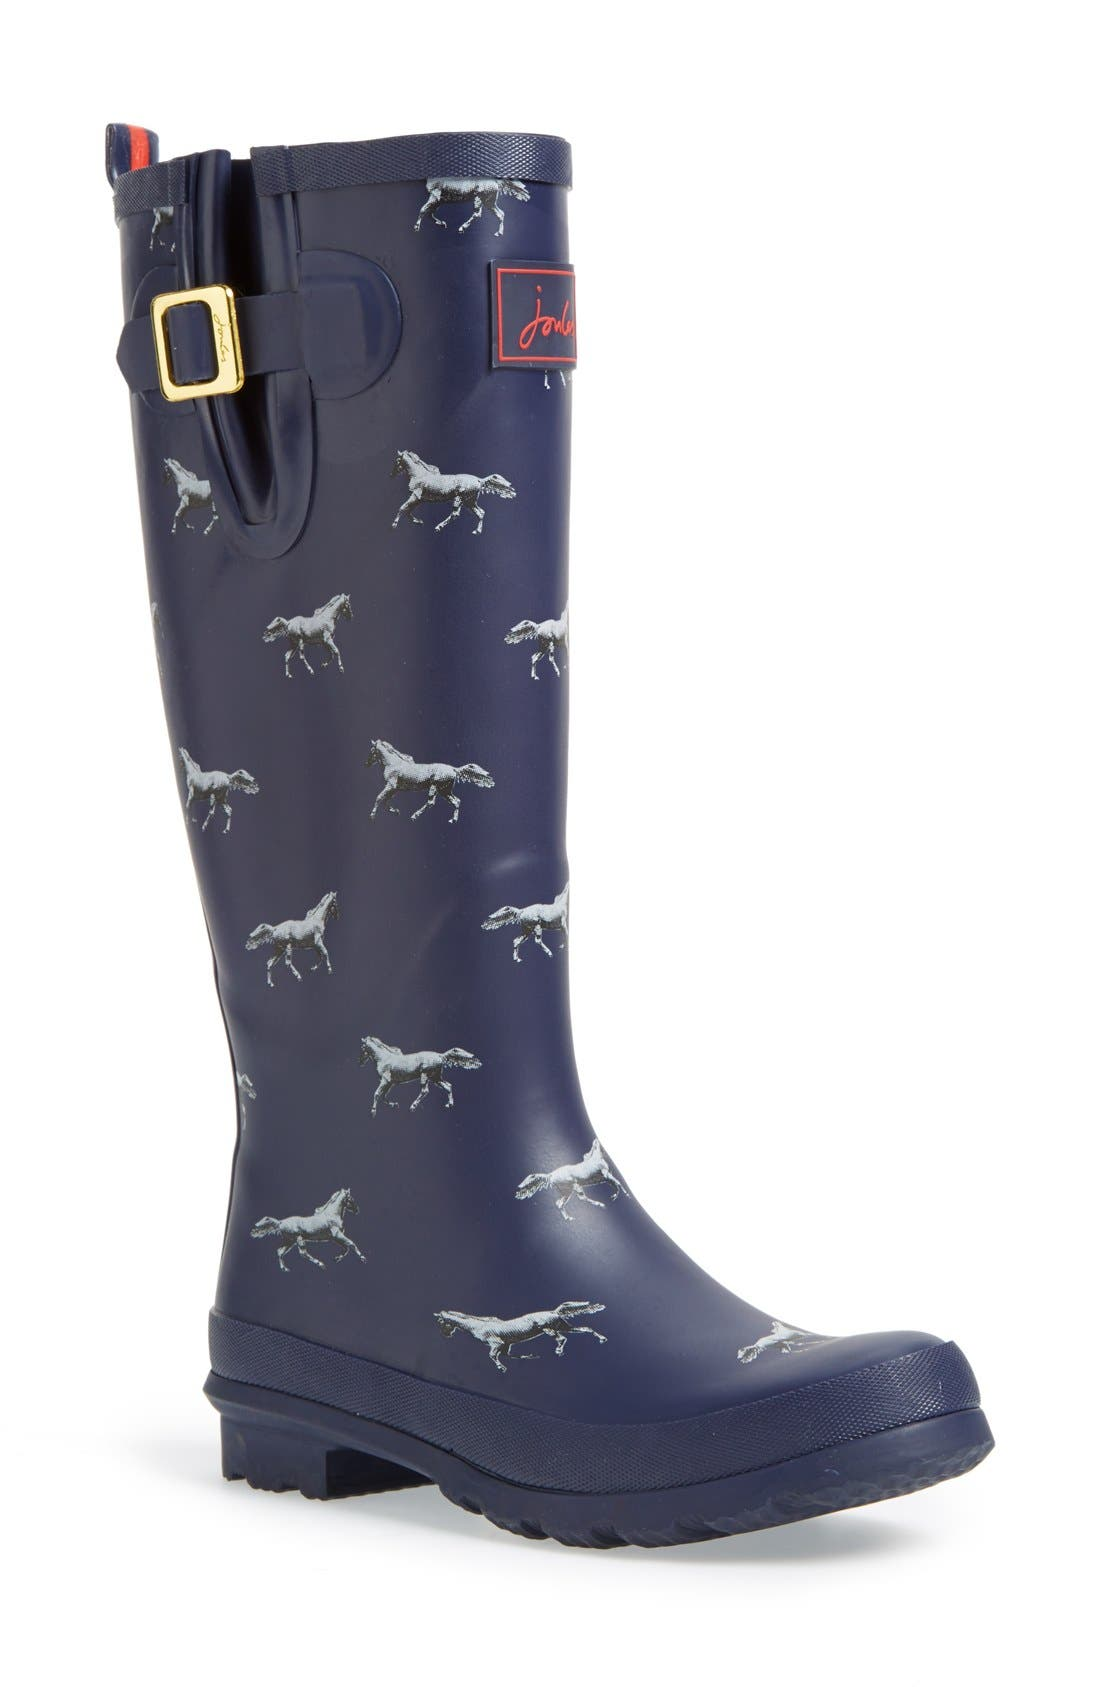 Alternate Image 1 Selected - Joules Print Welly Rain Boot (Women)